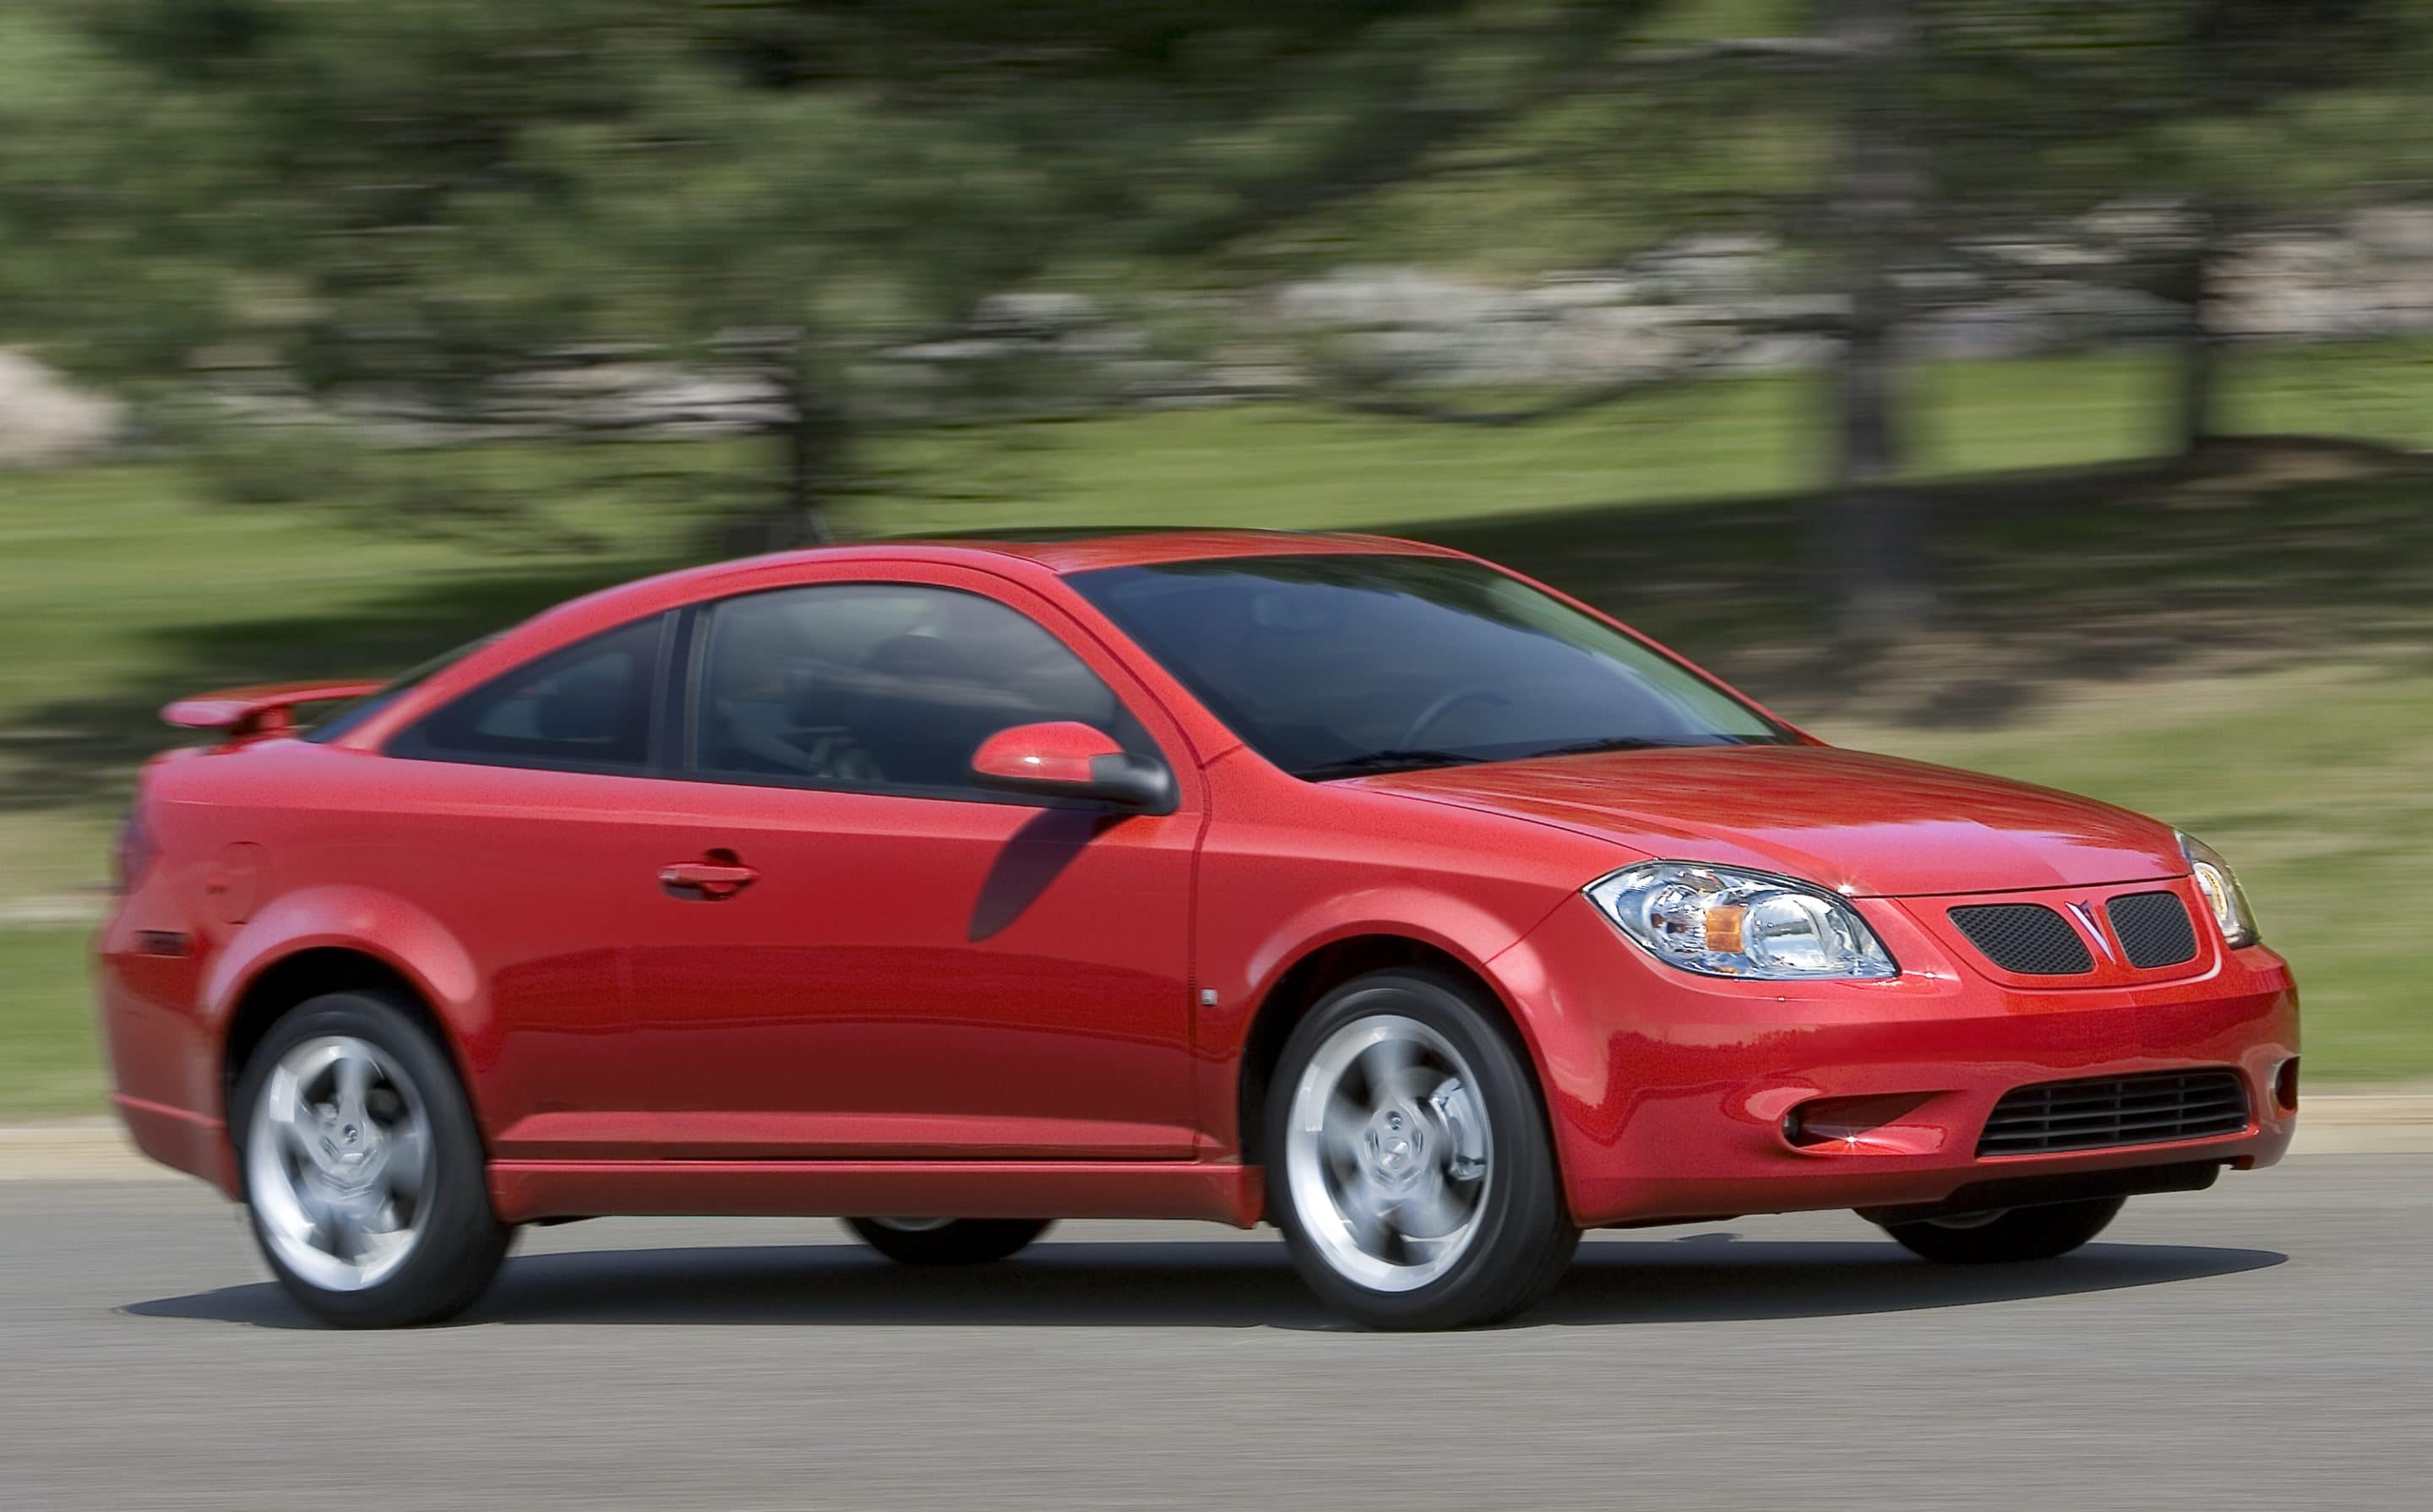 GM Offering Big Incentives on Pontiacs and Saturns